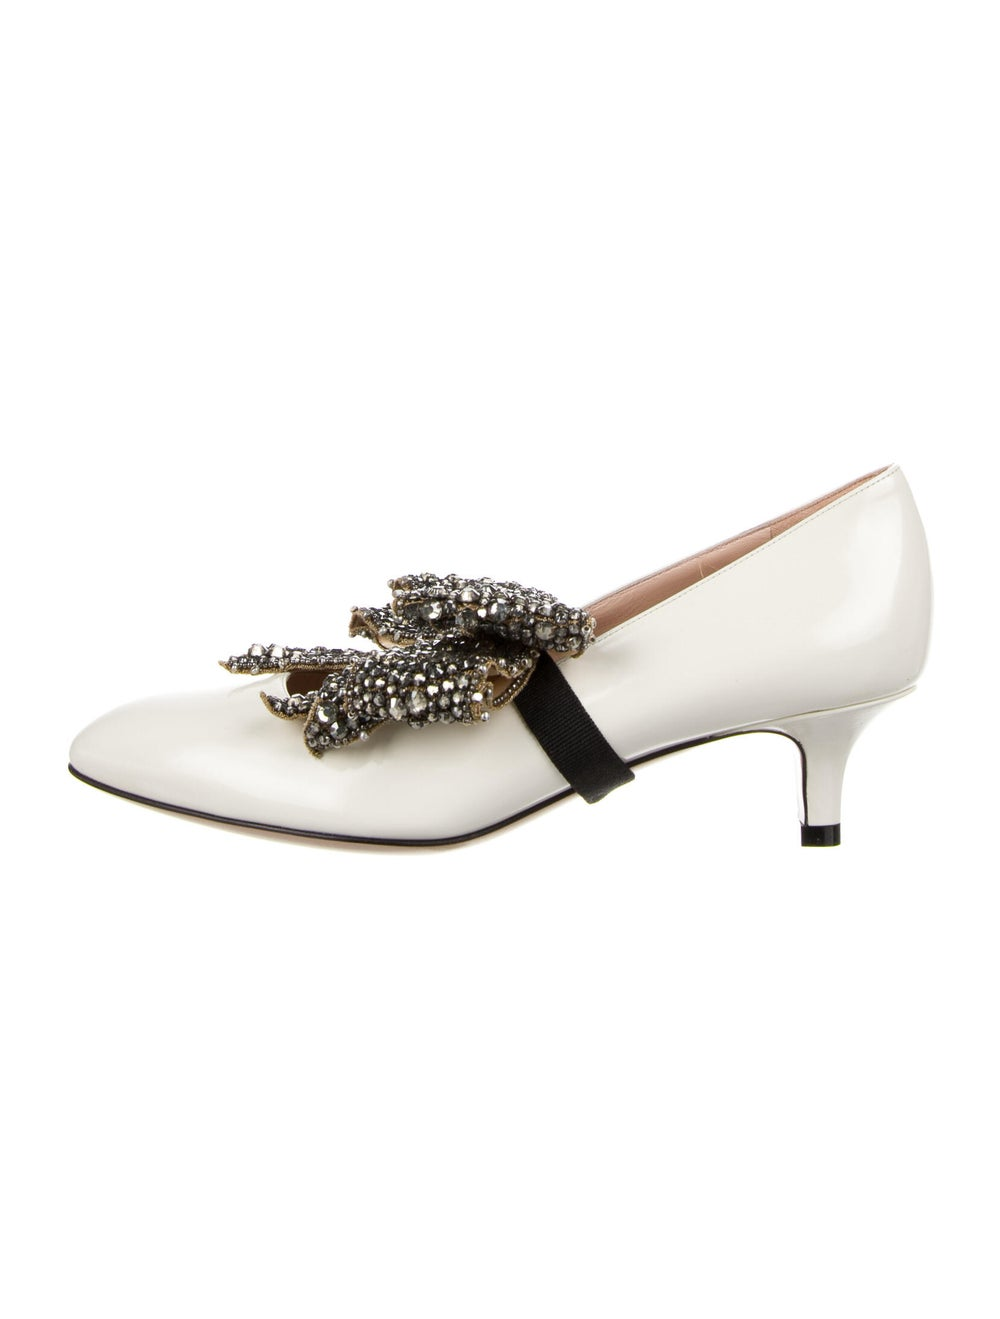 Gucci Leather Crystal Embellishments Pumps - image 1